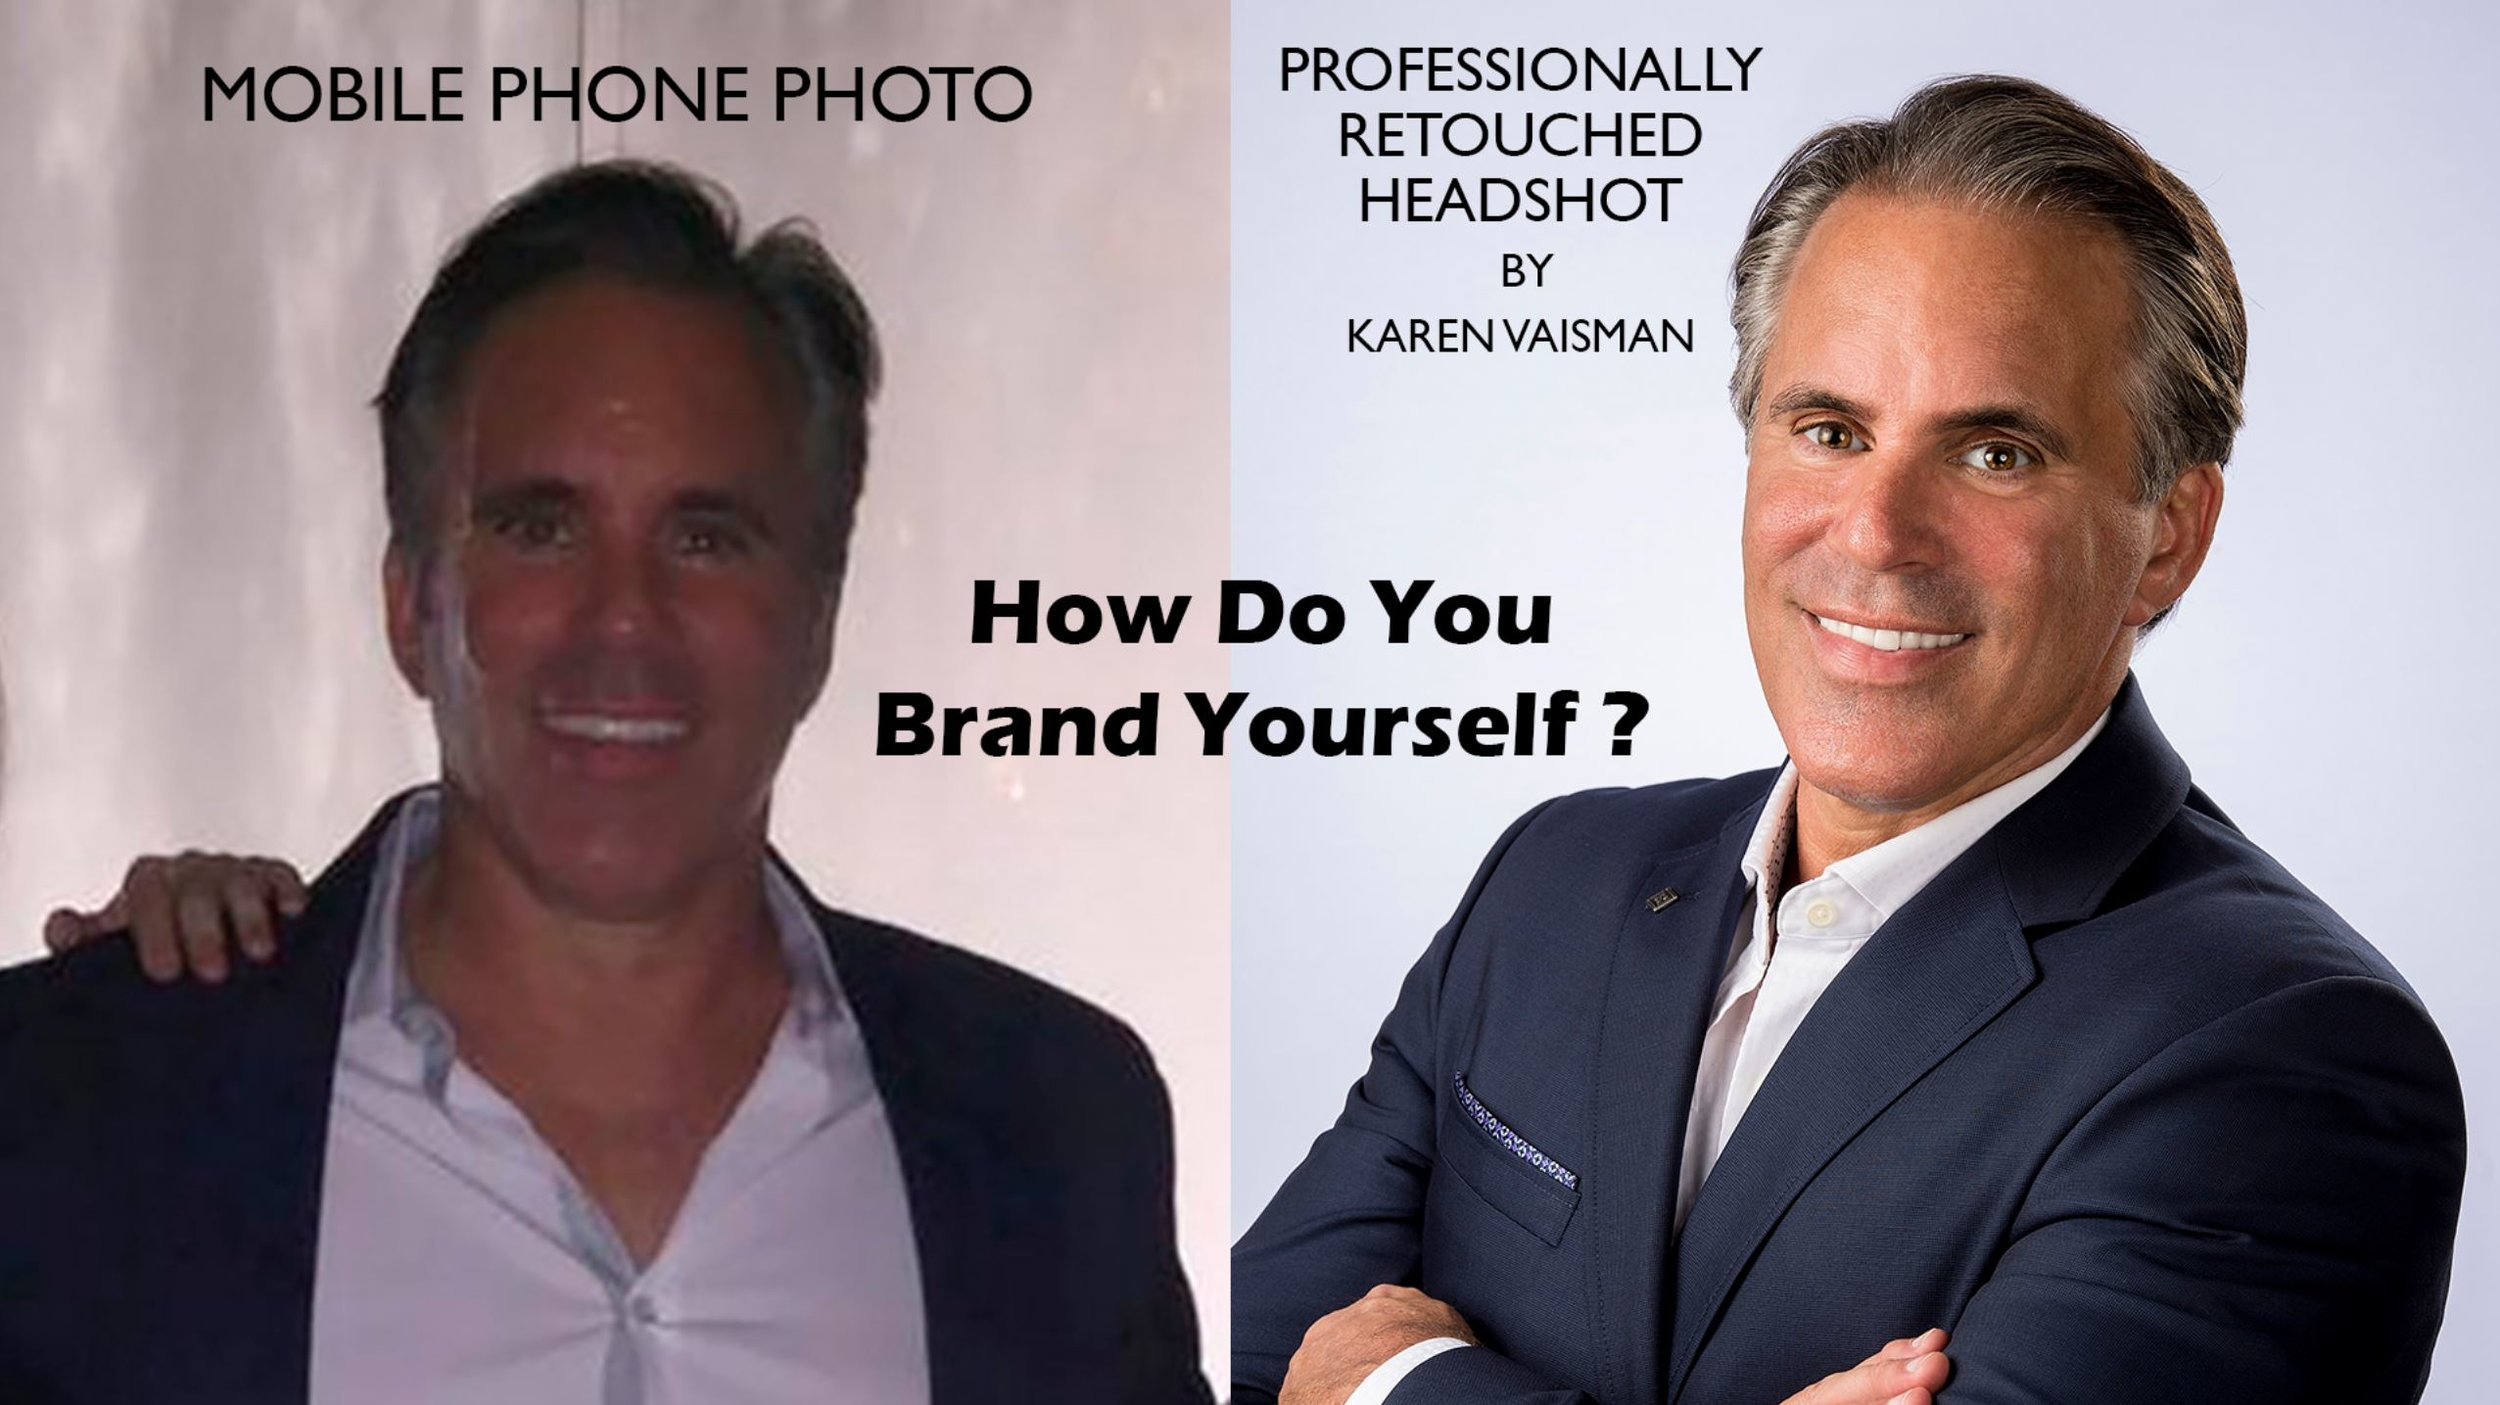 Same person- same clothing. Lighting, angle, professional photography, and retouching by a pro will help you stand out and get noticed! Do you still want to use that mobile phone photo to meet the person you want to build a relationship with?